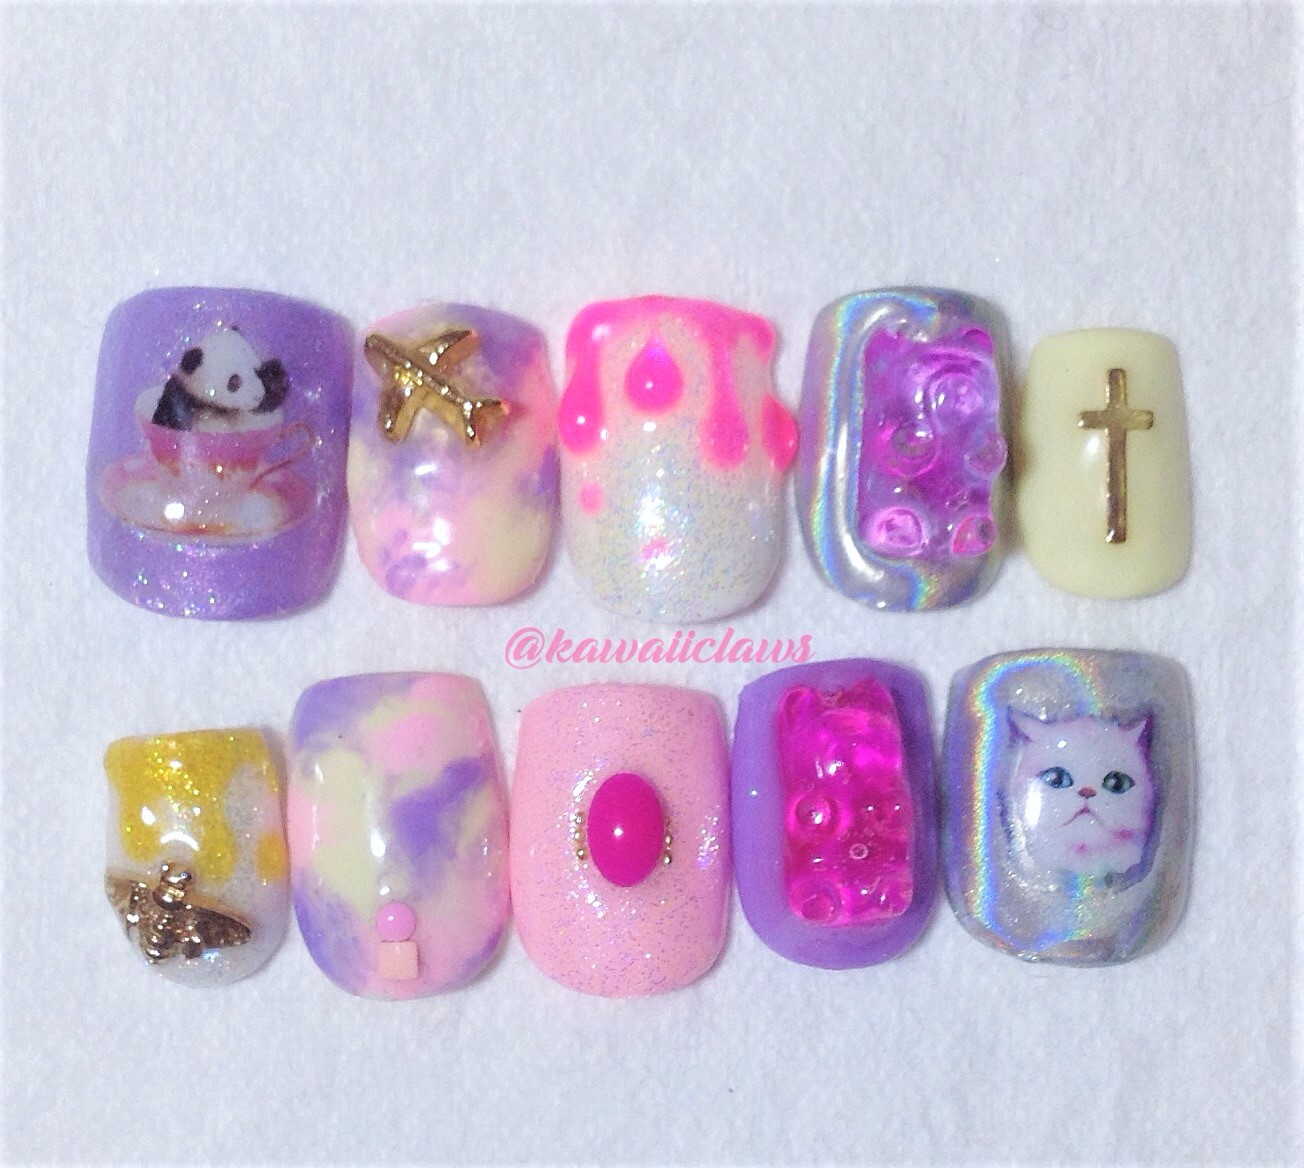 Kawaii Animal Pastel Marble Gummy Bears Mixed Design Gel Nail Art Press On False Fake Nails